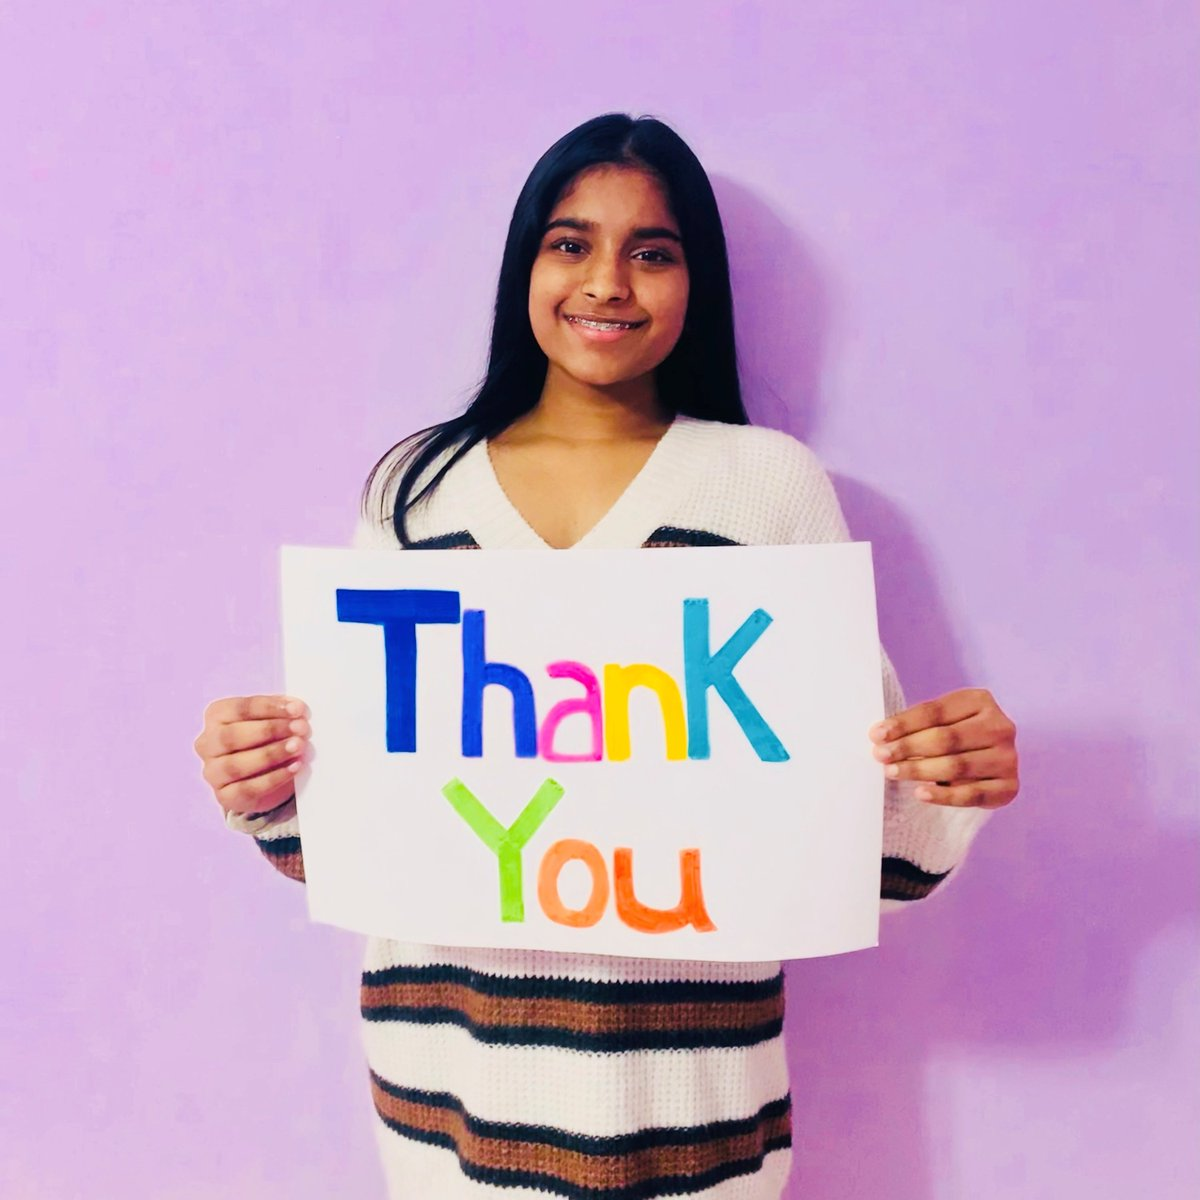 Thank you to everyone that treated it forward through Milk & Cookies Month in support of SickKids! You made December even sweeter for kids like Hanvitha. 💙 A very special thank you to all of our participating partners! 🥛🍪